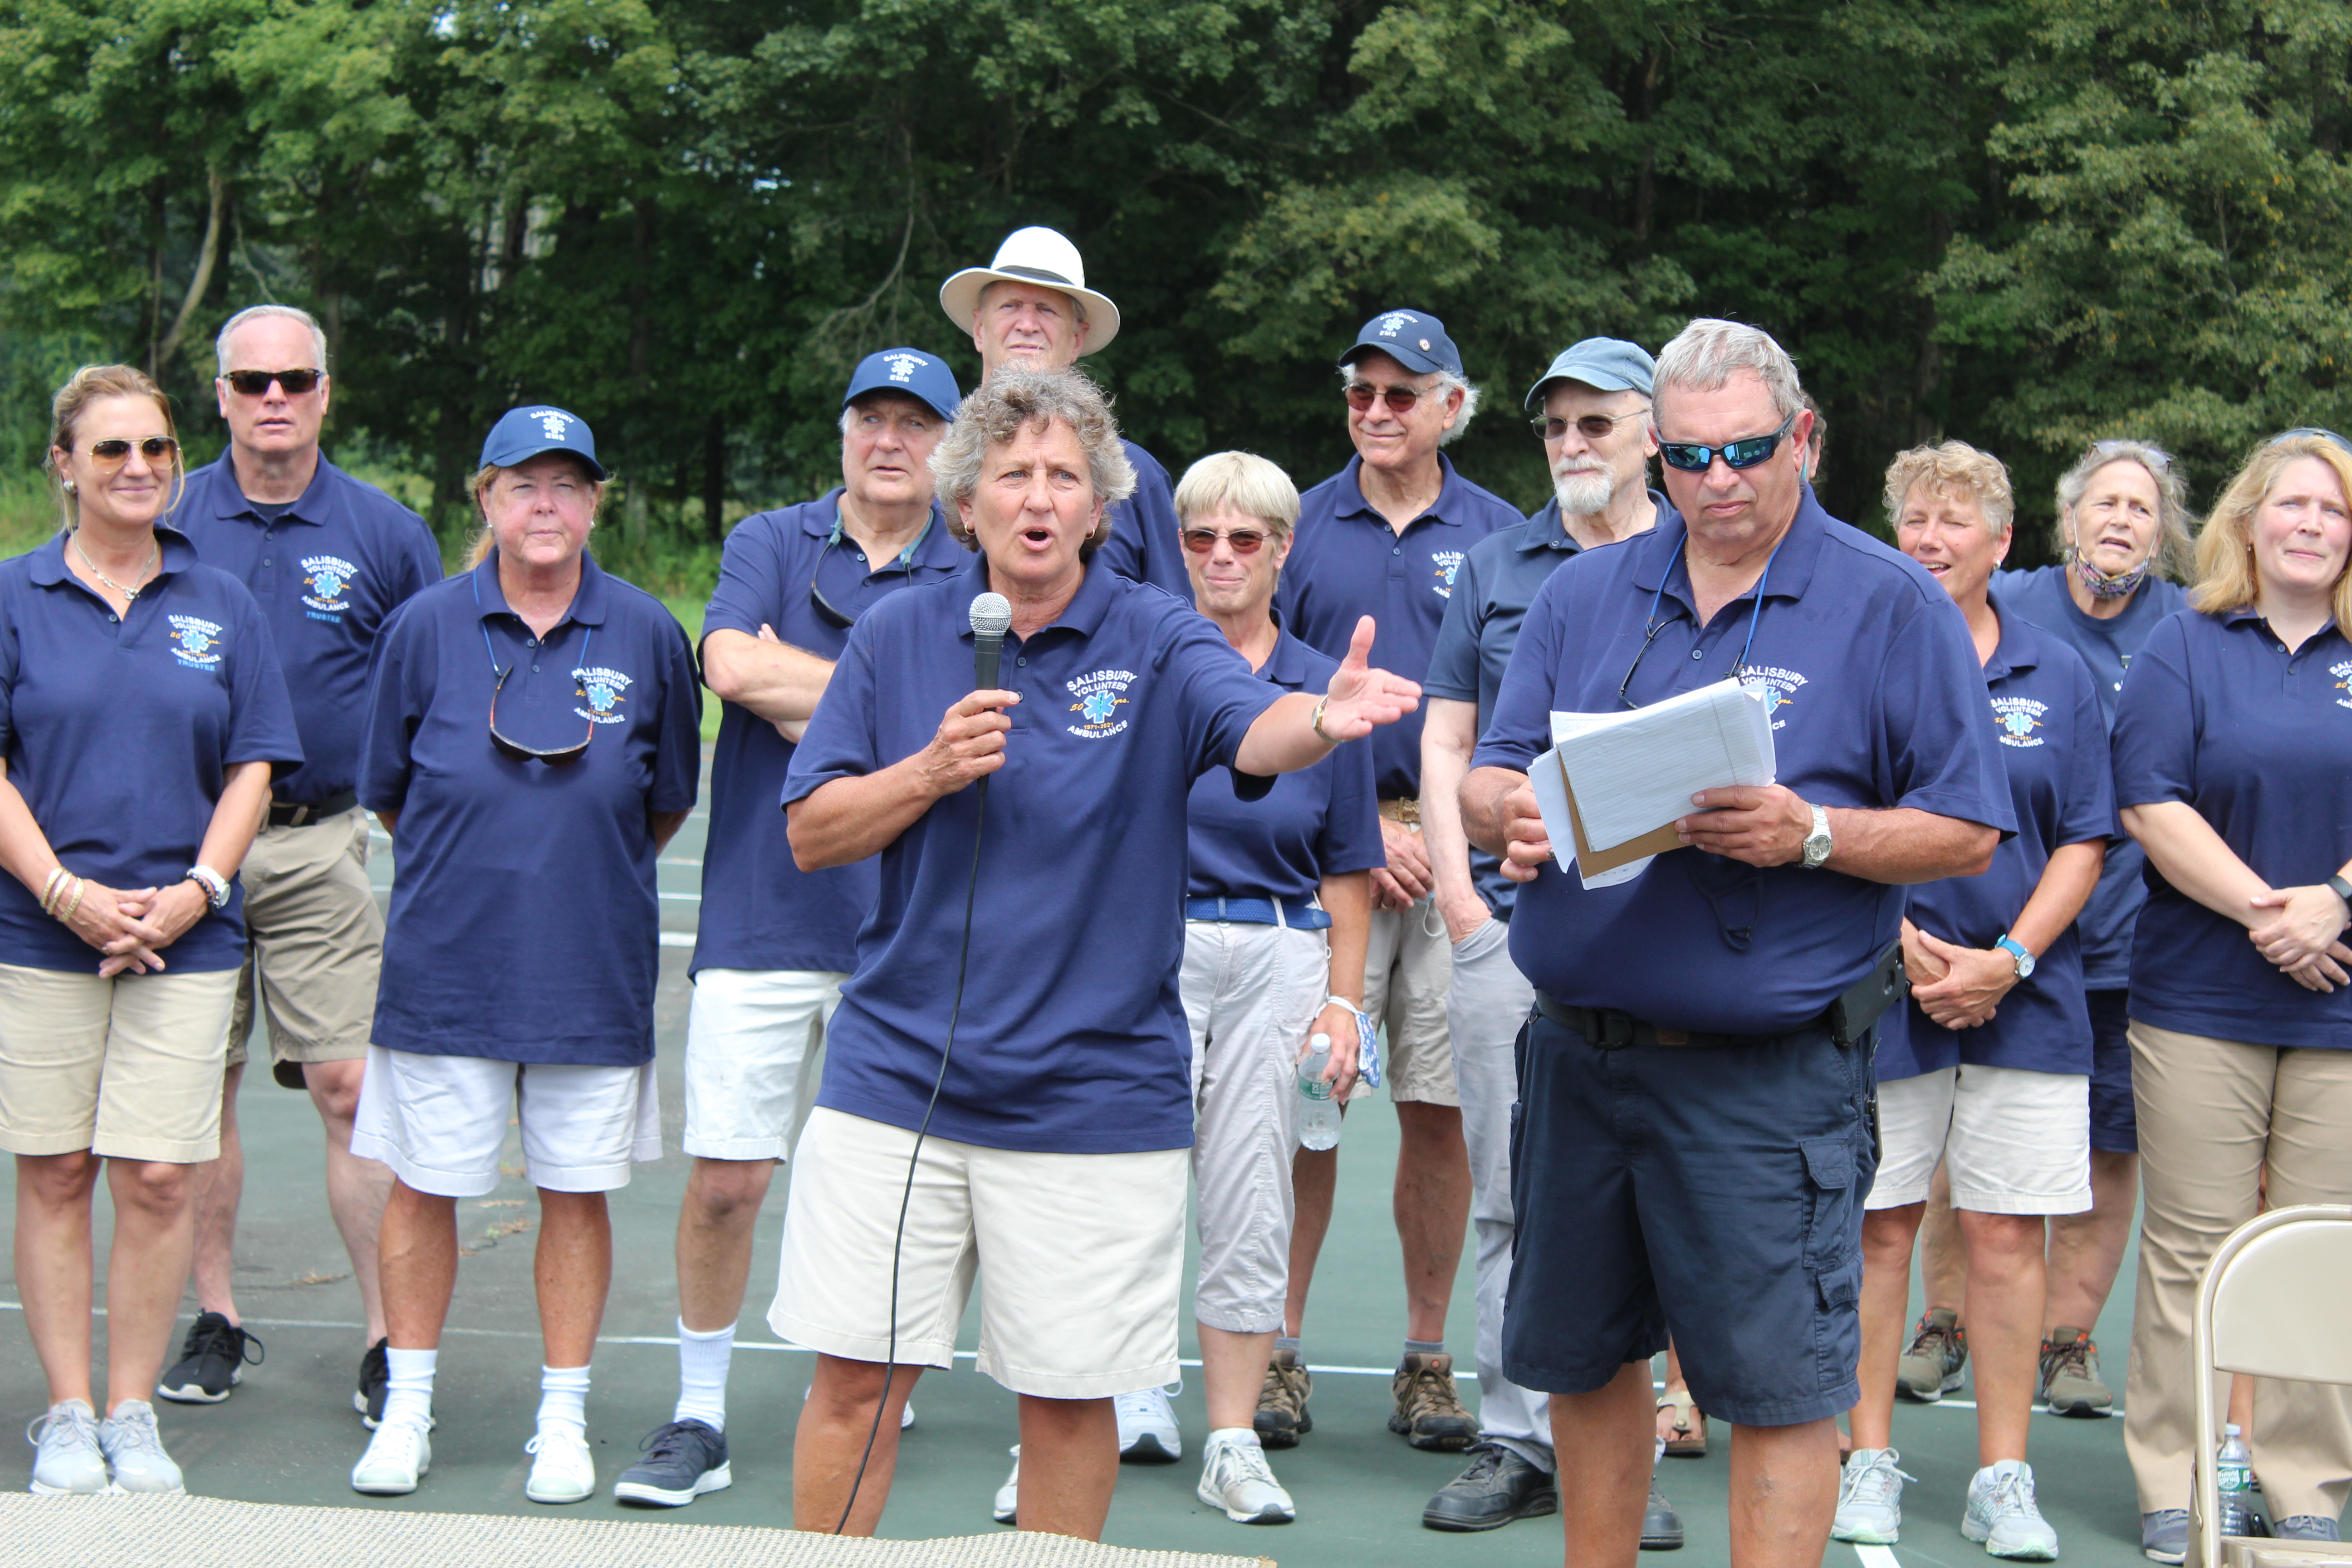 <strong>Mike Brenner, front right in photo, and Jacquie Rice, with microphone, invited all members and trustees, past and present, to come forward at the Salisbury Volunteer Ambulance Service 50th anniversary celebration at Trotta Field on Saturday, Aug. 21.</strong><em><strong>Photoby Patrick L. Sullivan</strong></em>